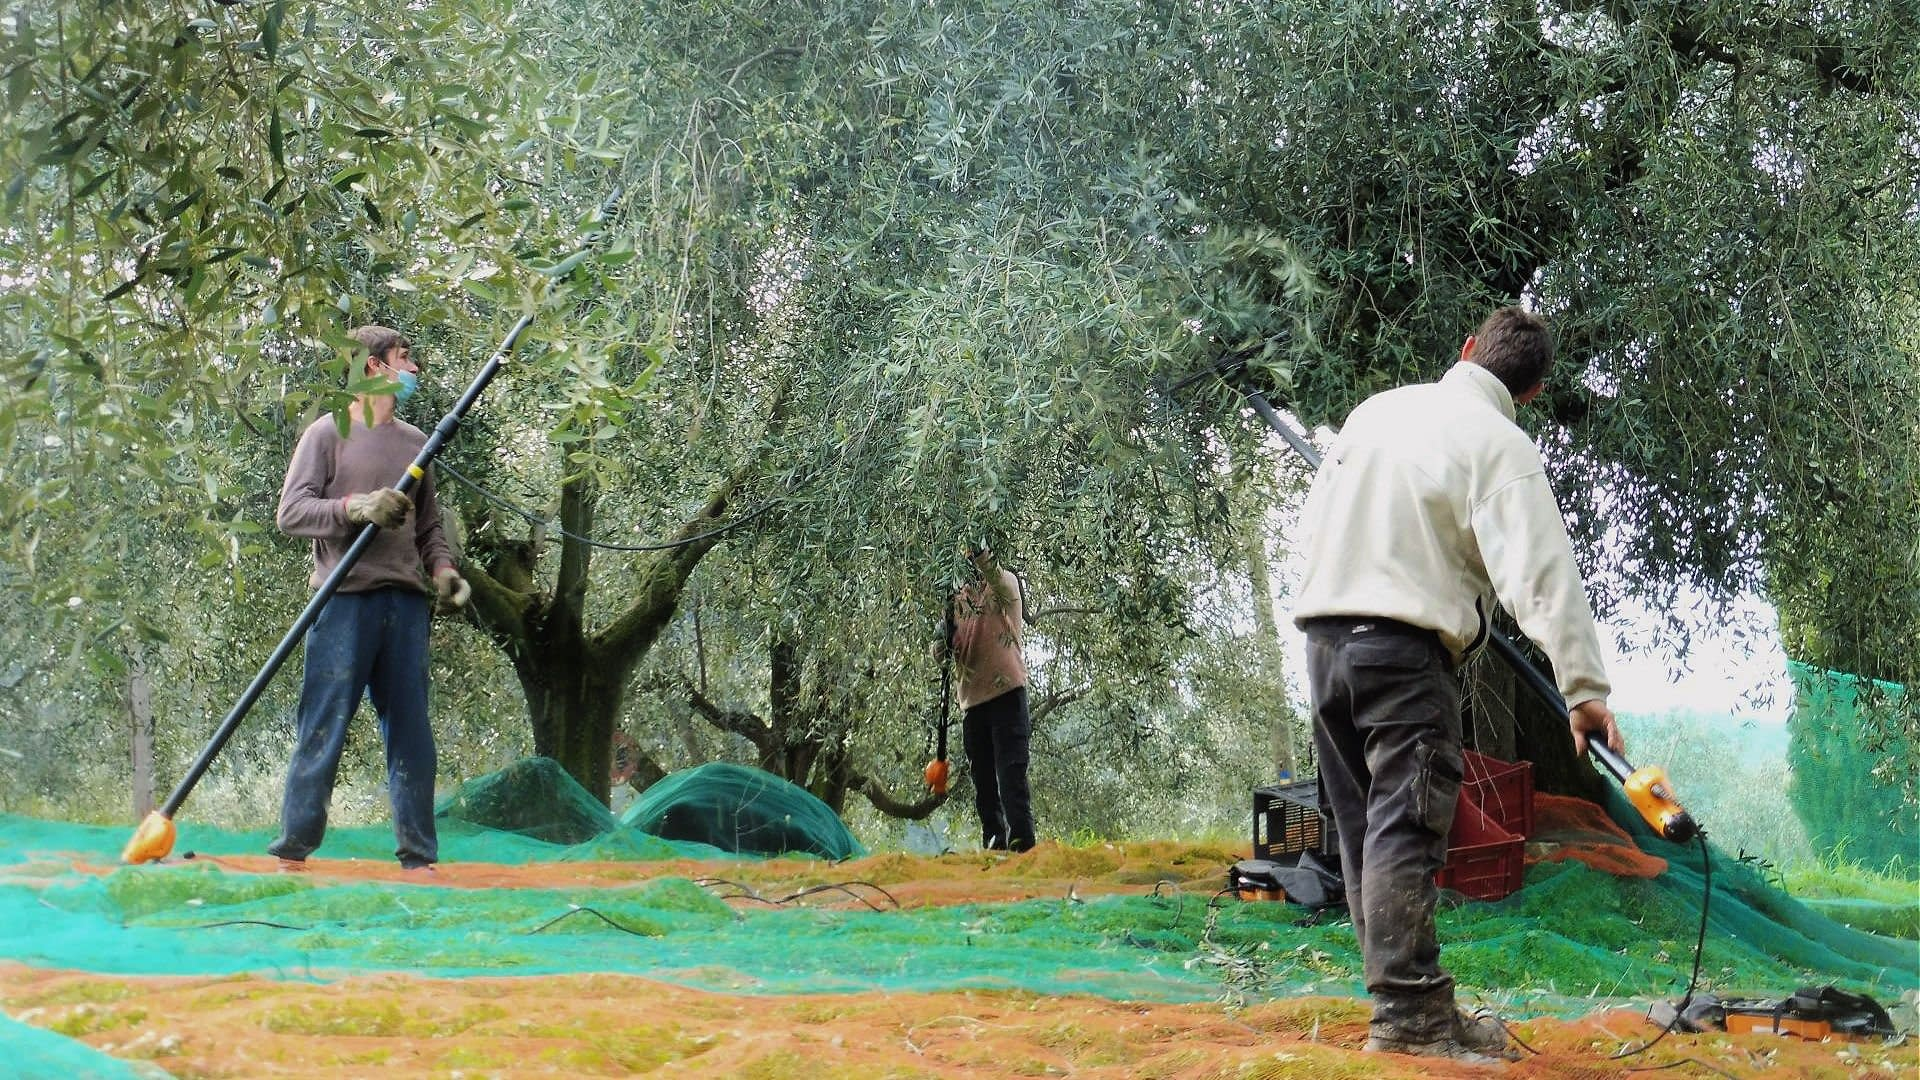 business-europe-production-production-rebounds-in-france-amid-climatic-challenges-olive-oil-times